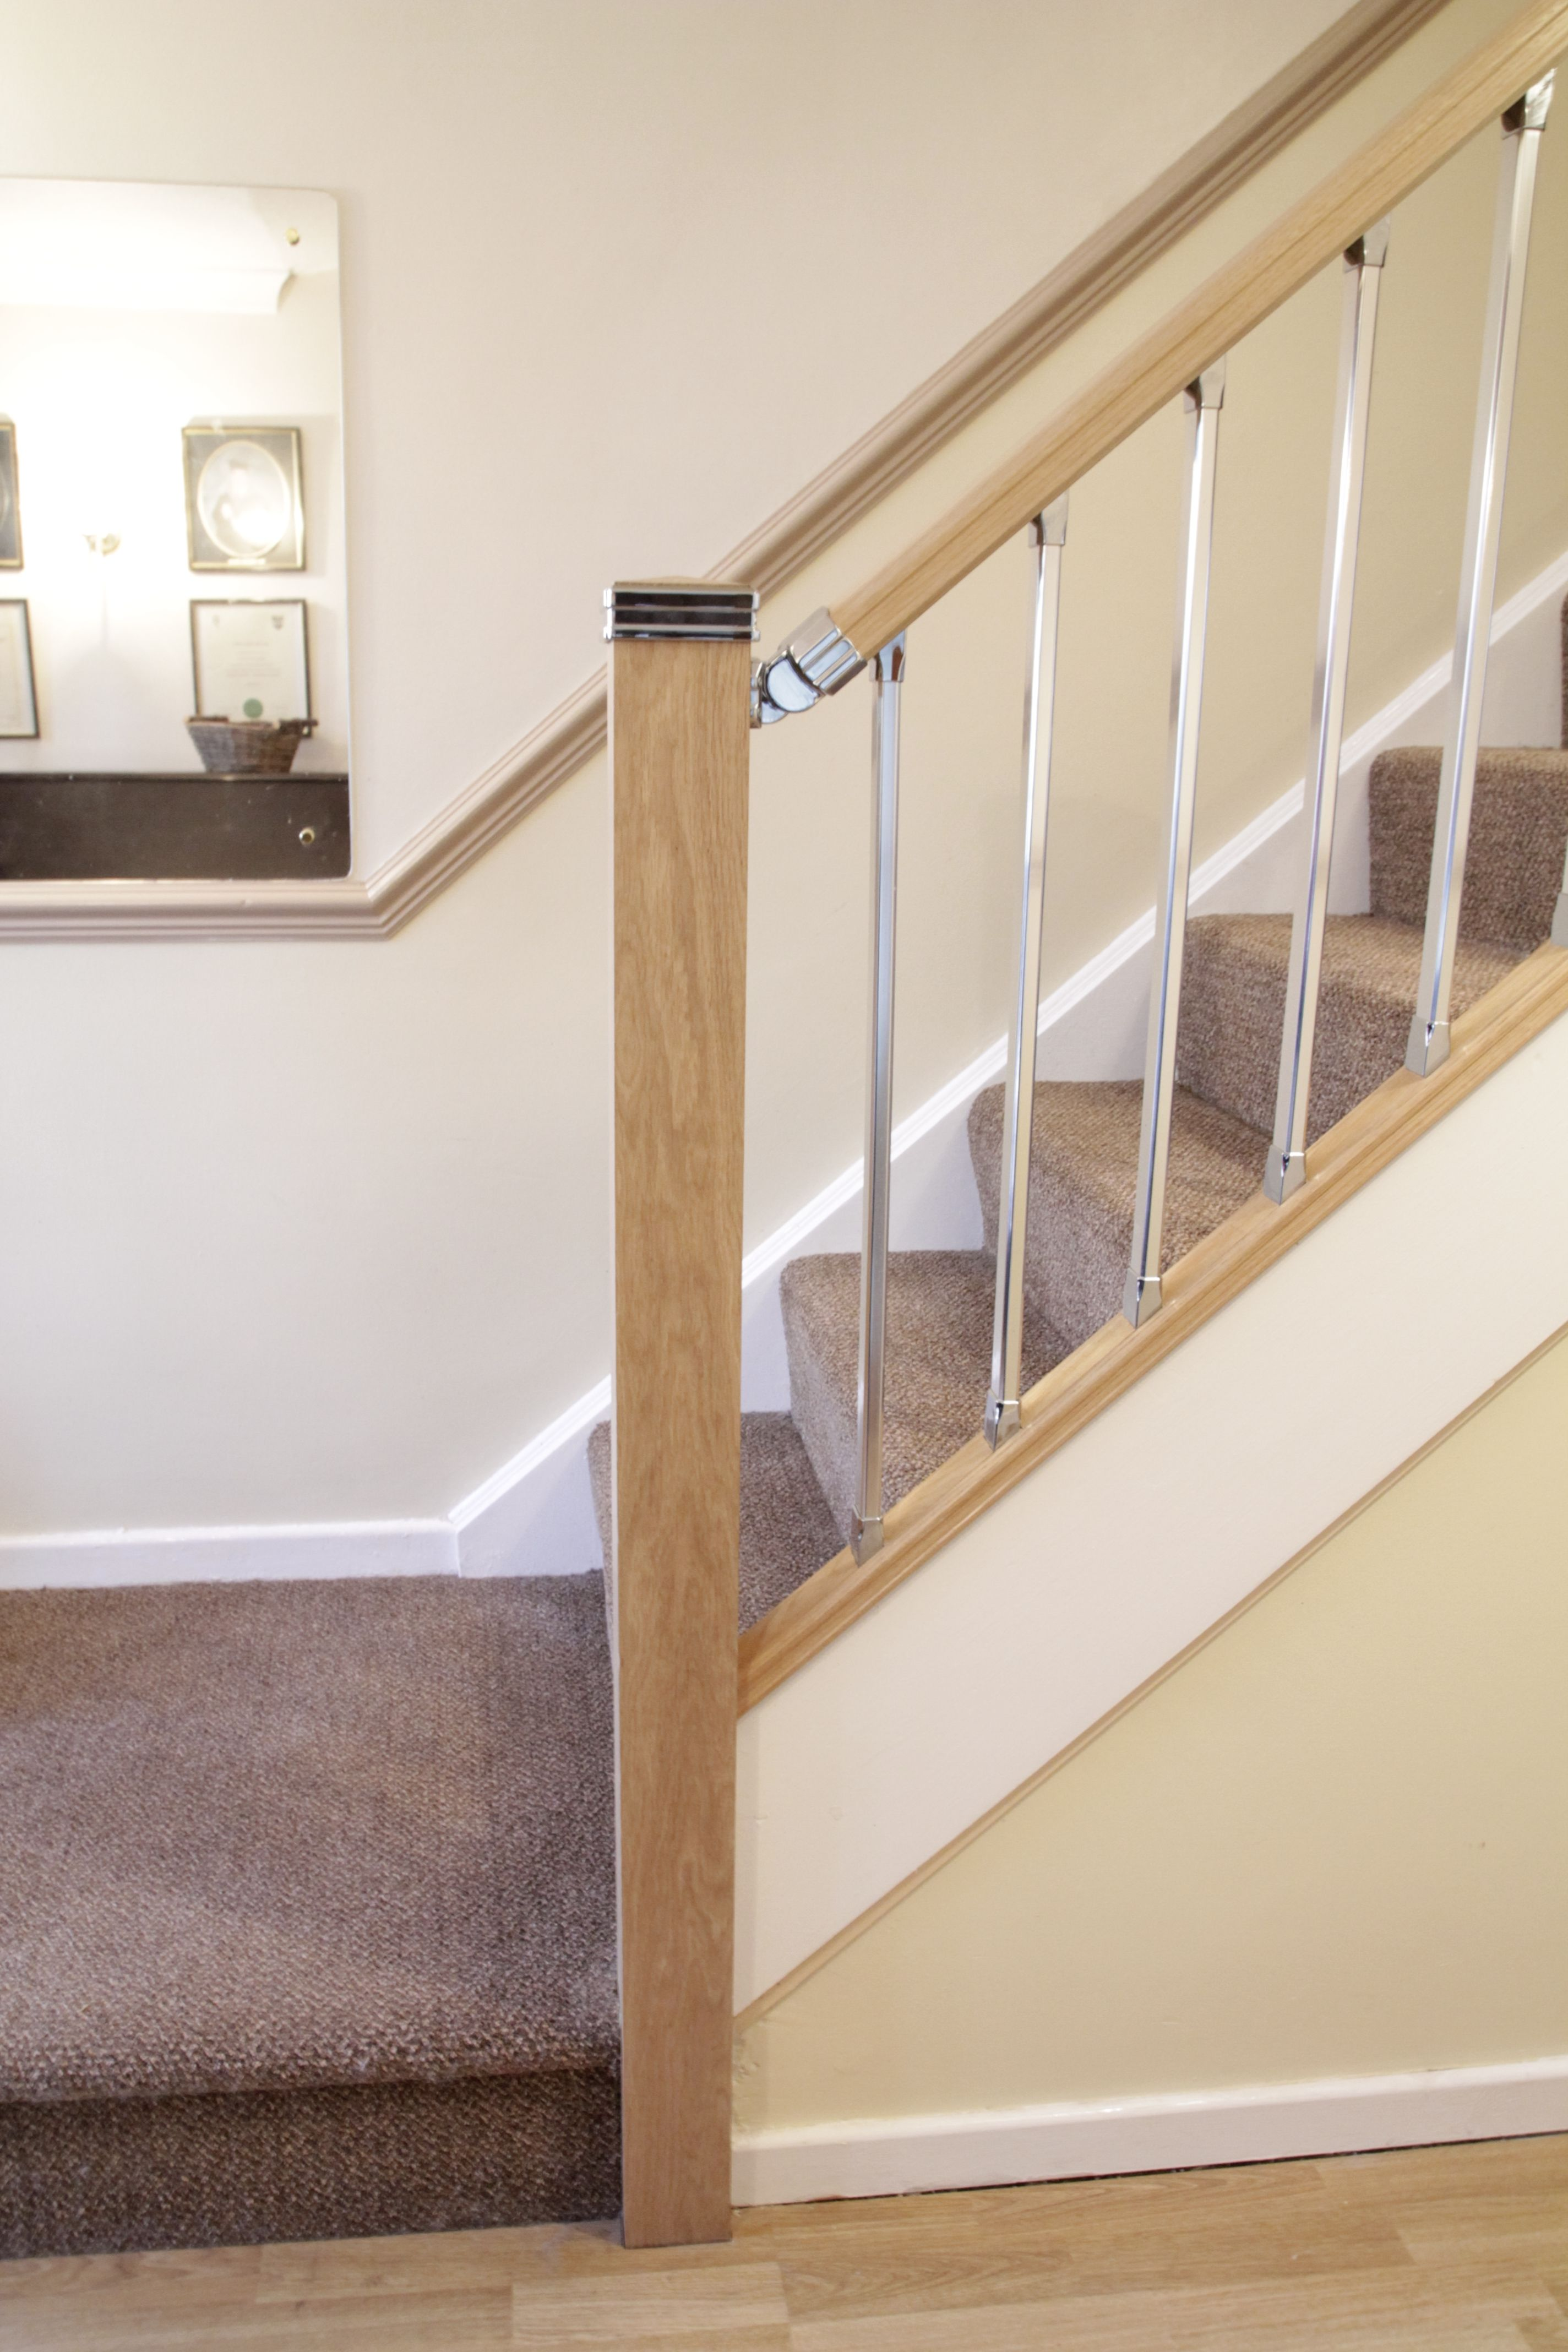 Best Solution Stair Parts Shaw Stairs Solution Stairs Staircases Oak Handrails Caps Diy Staircases 640 x 480